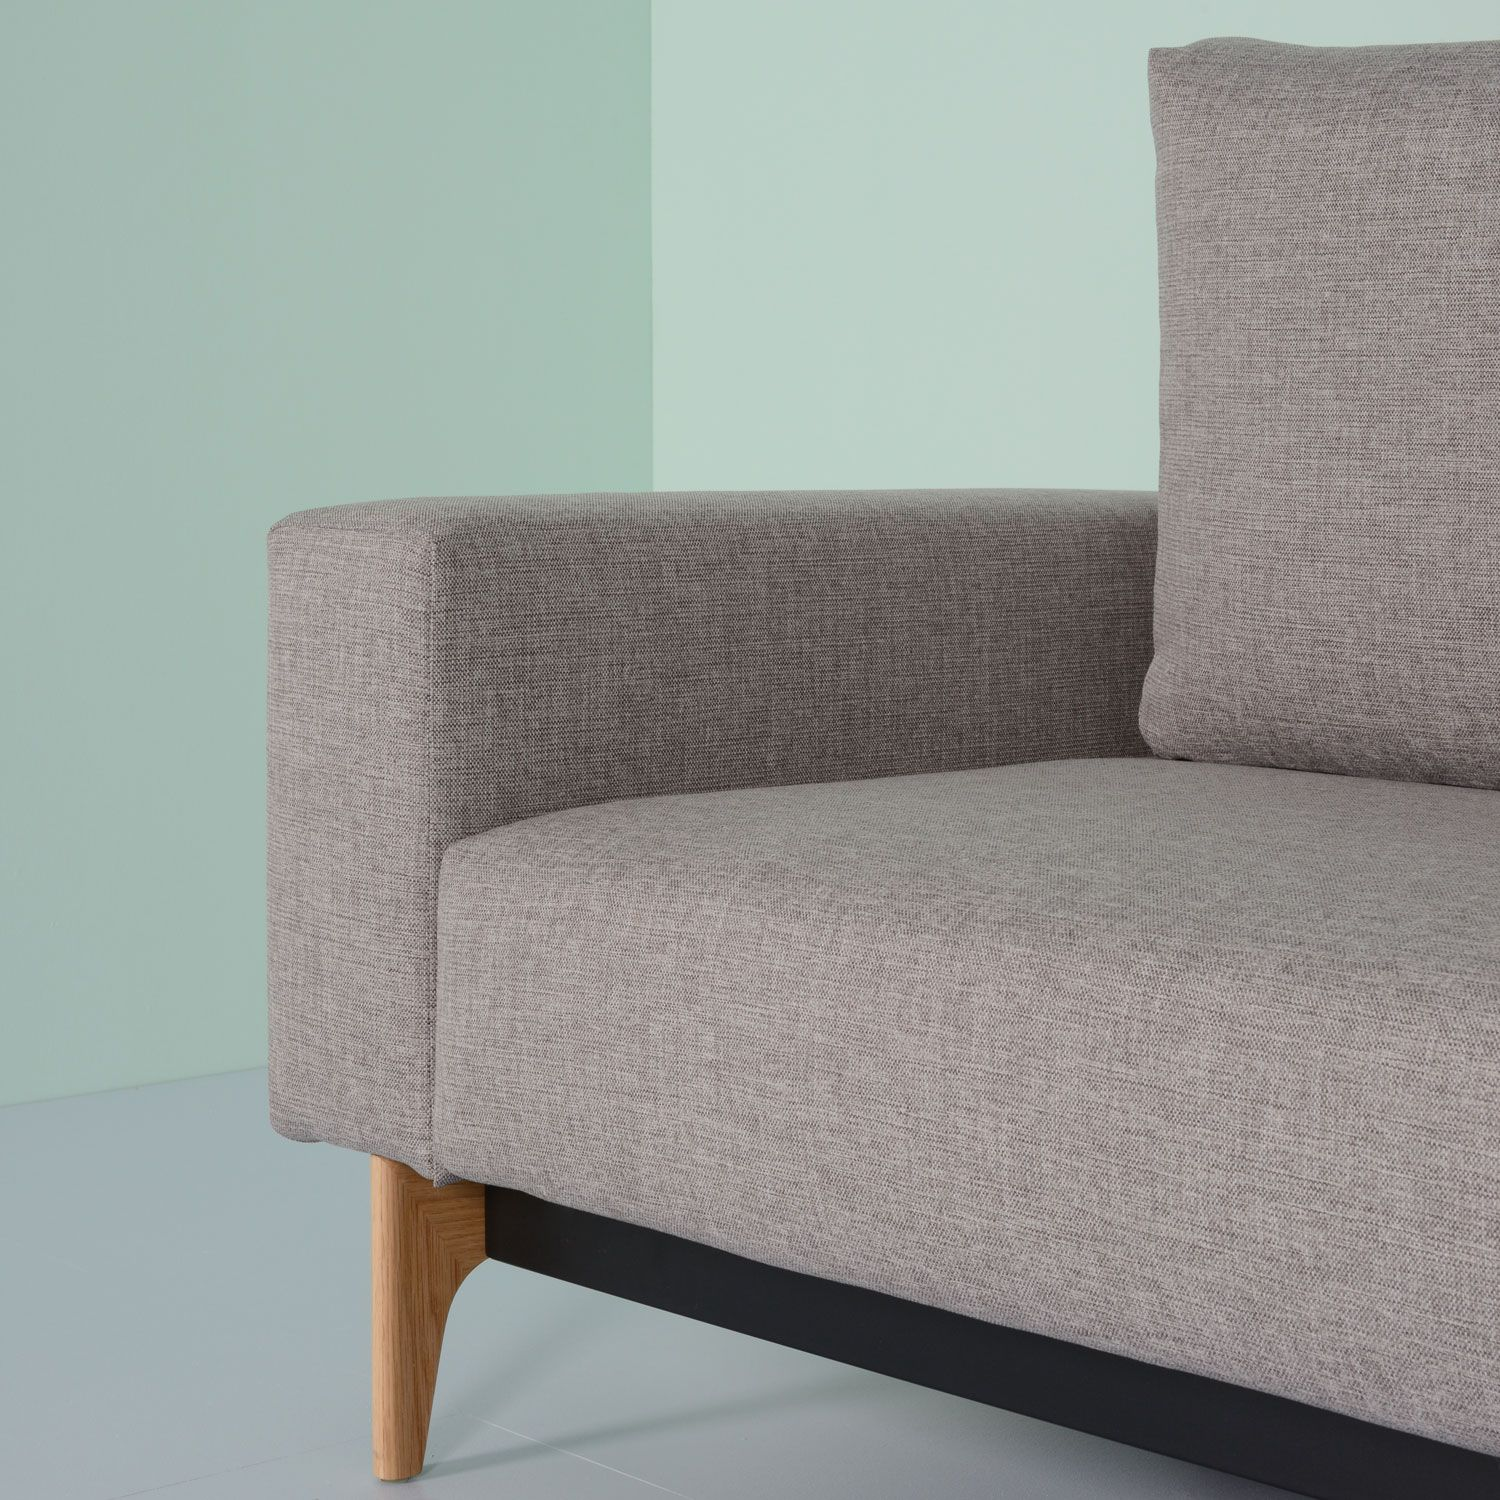 Per Weiss Sofa Bed Uk Ambrose Adapt Sofa Bed By Per Weiss Sofabeds Sofas Furniture